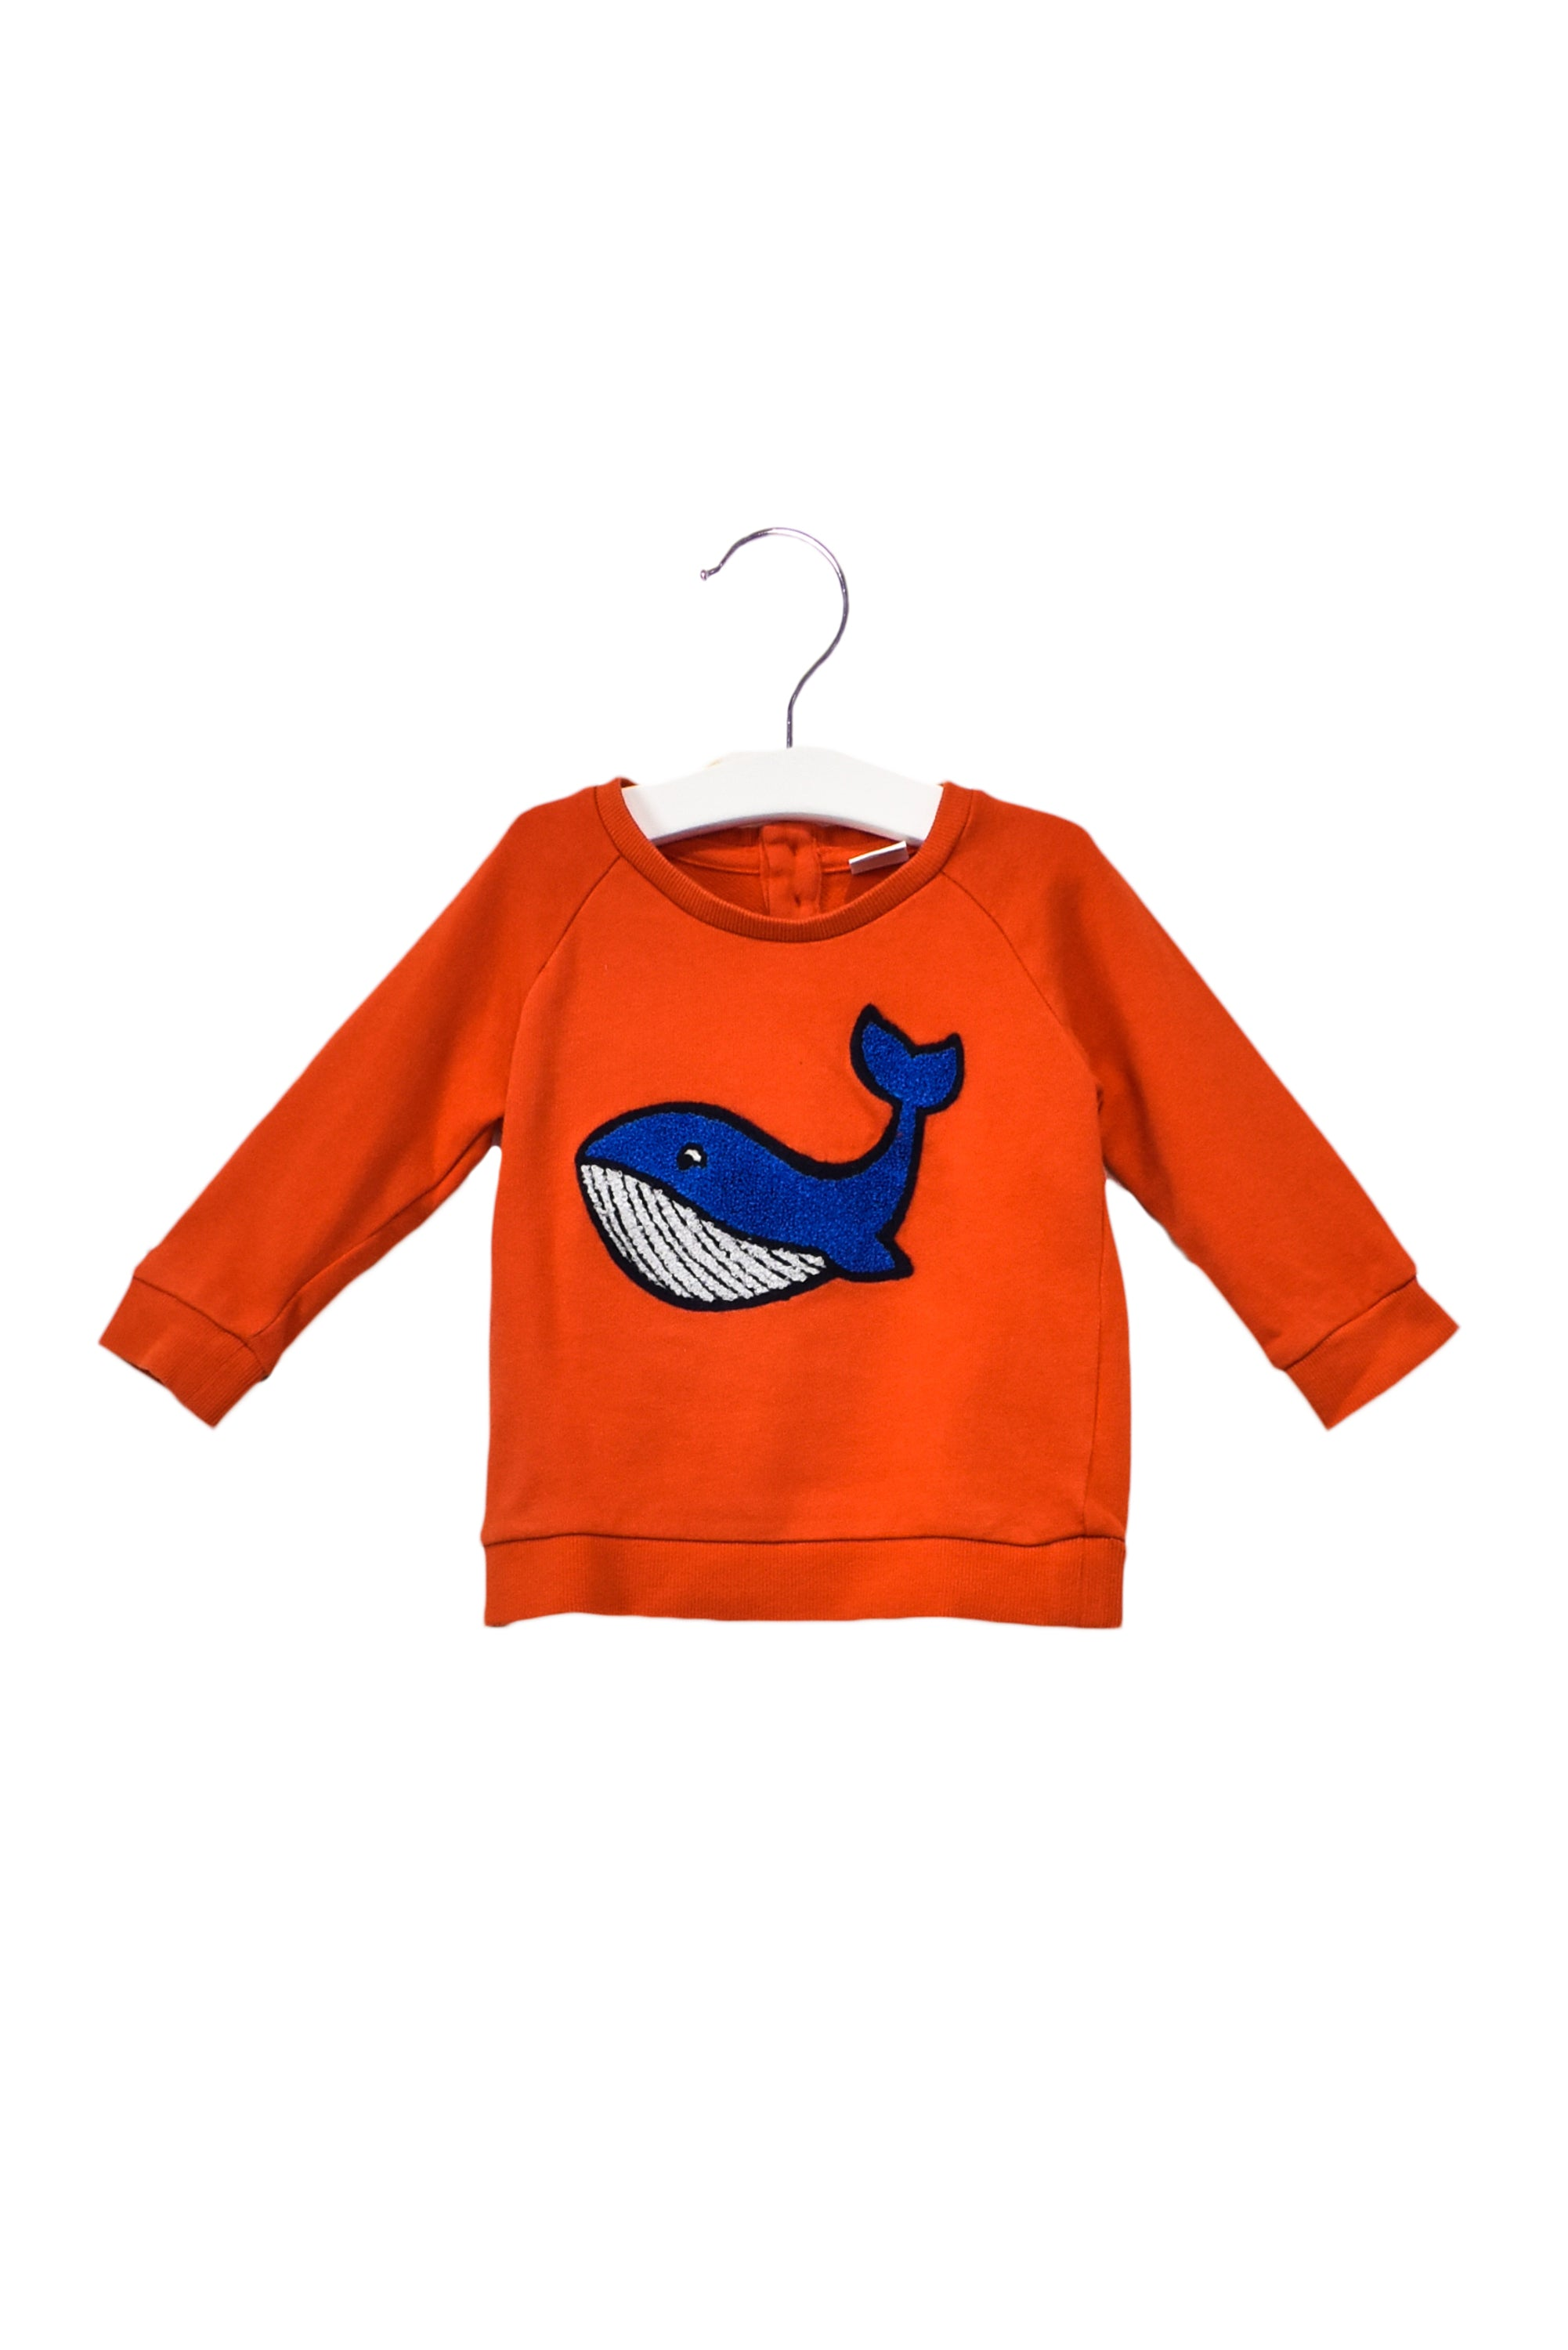 10025892 Seed Baby~Sweatshirt 12-18M at Retykle